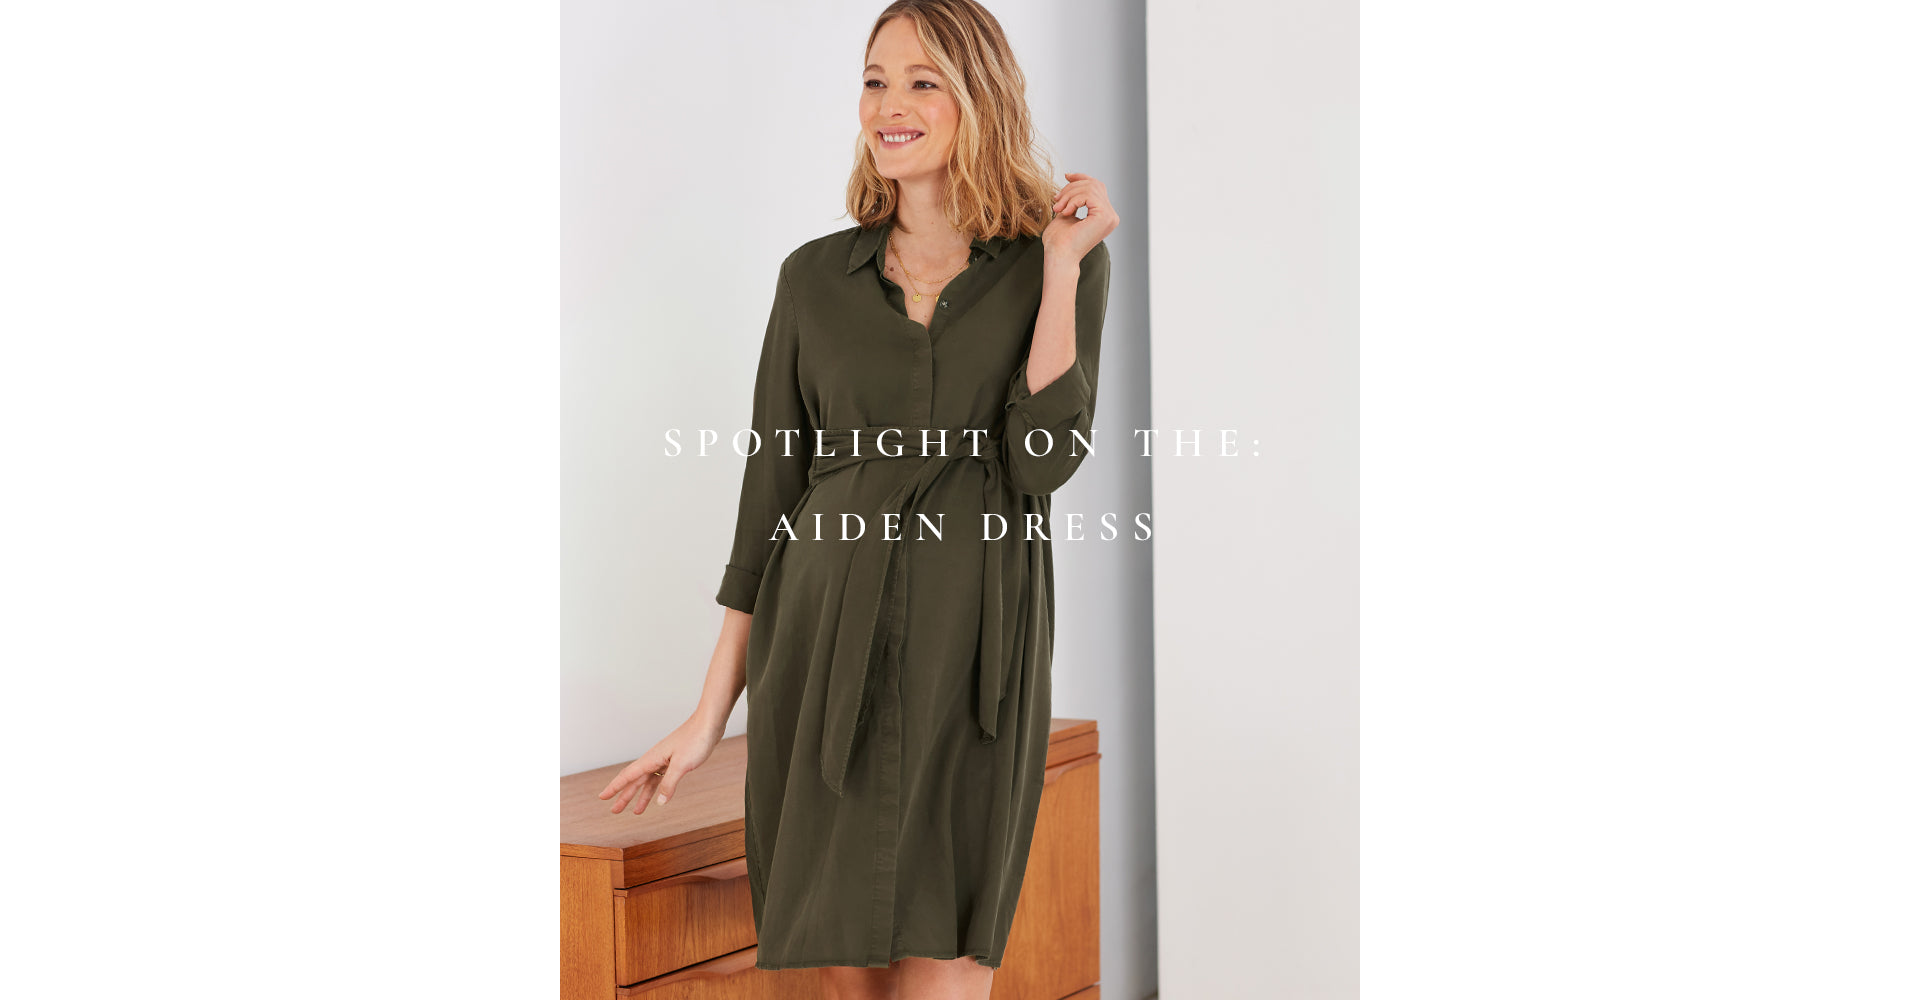 Spotlight on the Aiden Dress